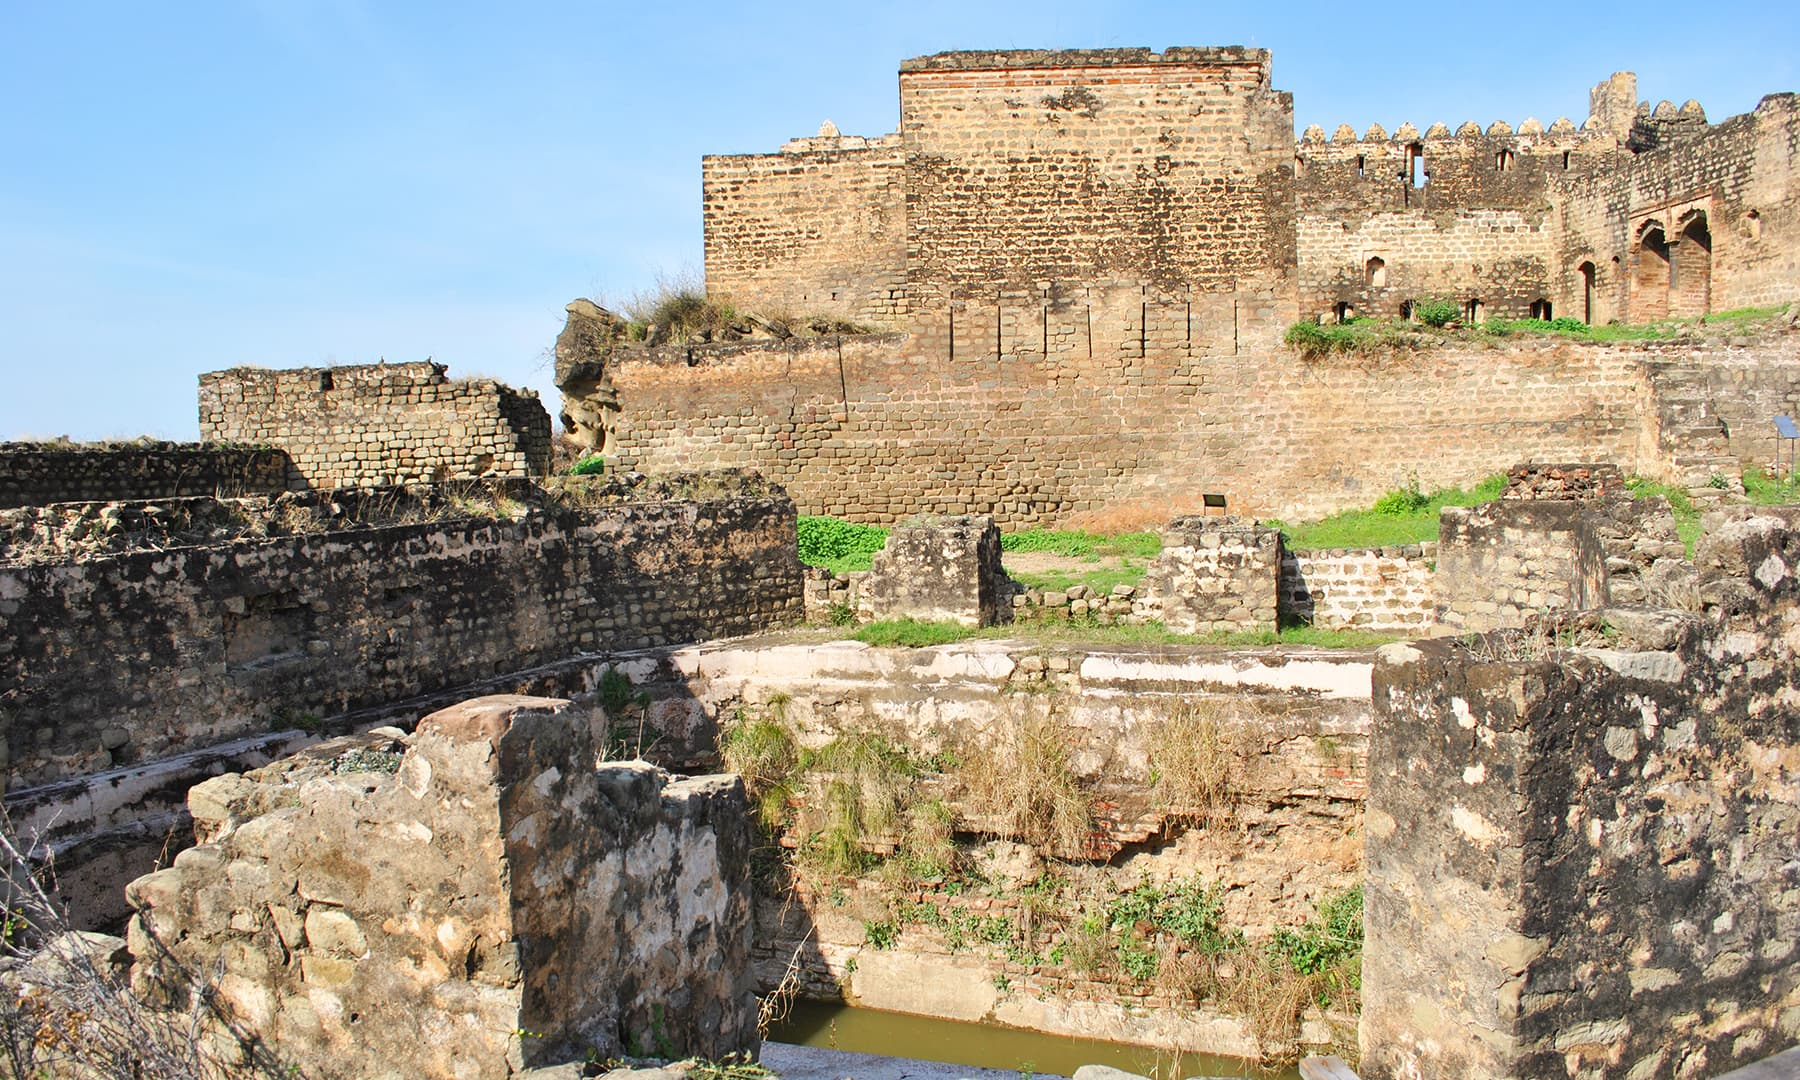 Being identical to the architectural characteristics of Mangla and Muzaffarabad Forts, Ramkot was very likely built in the second half of 16th century.